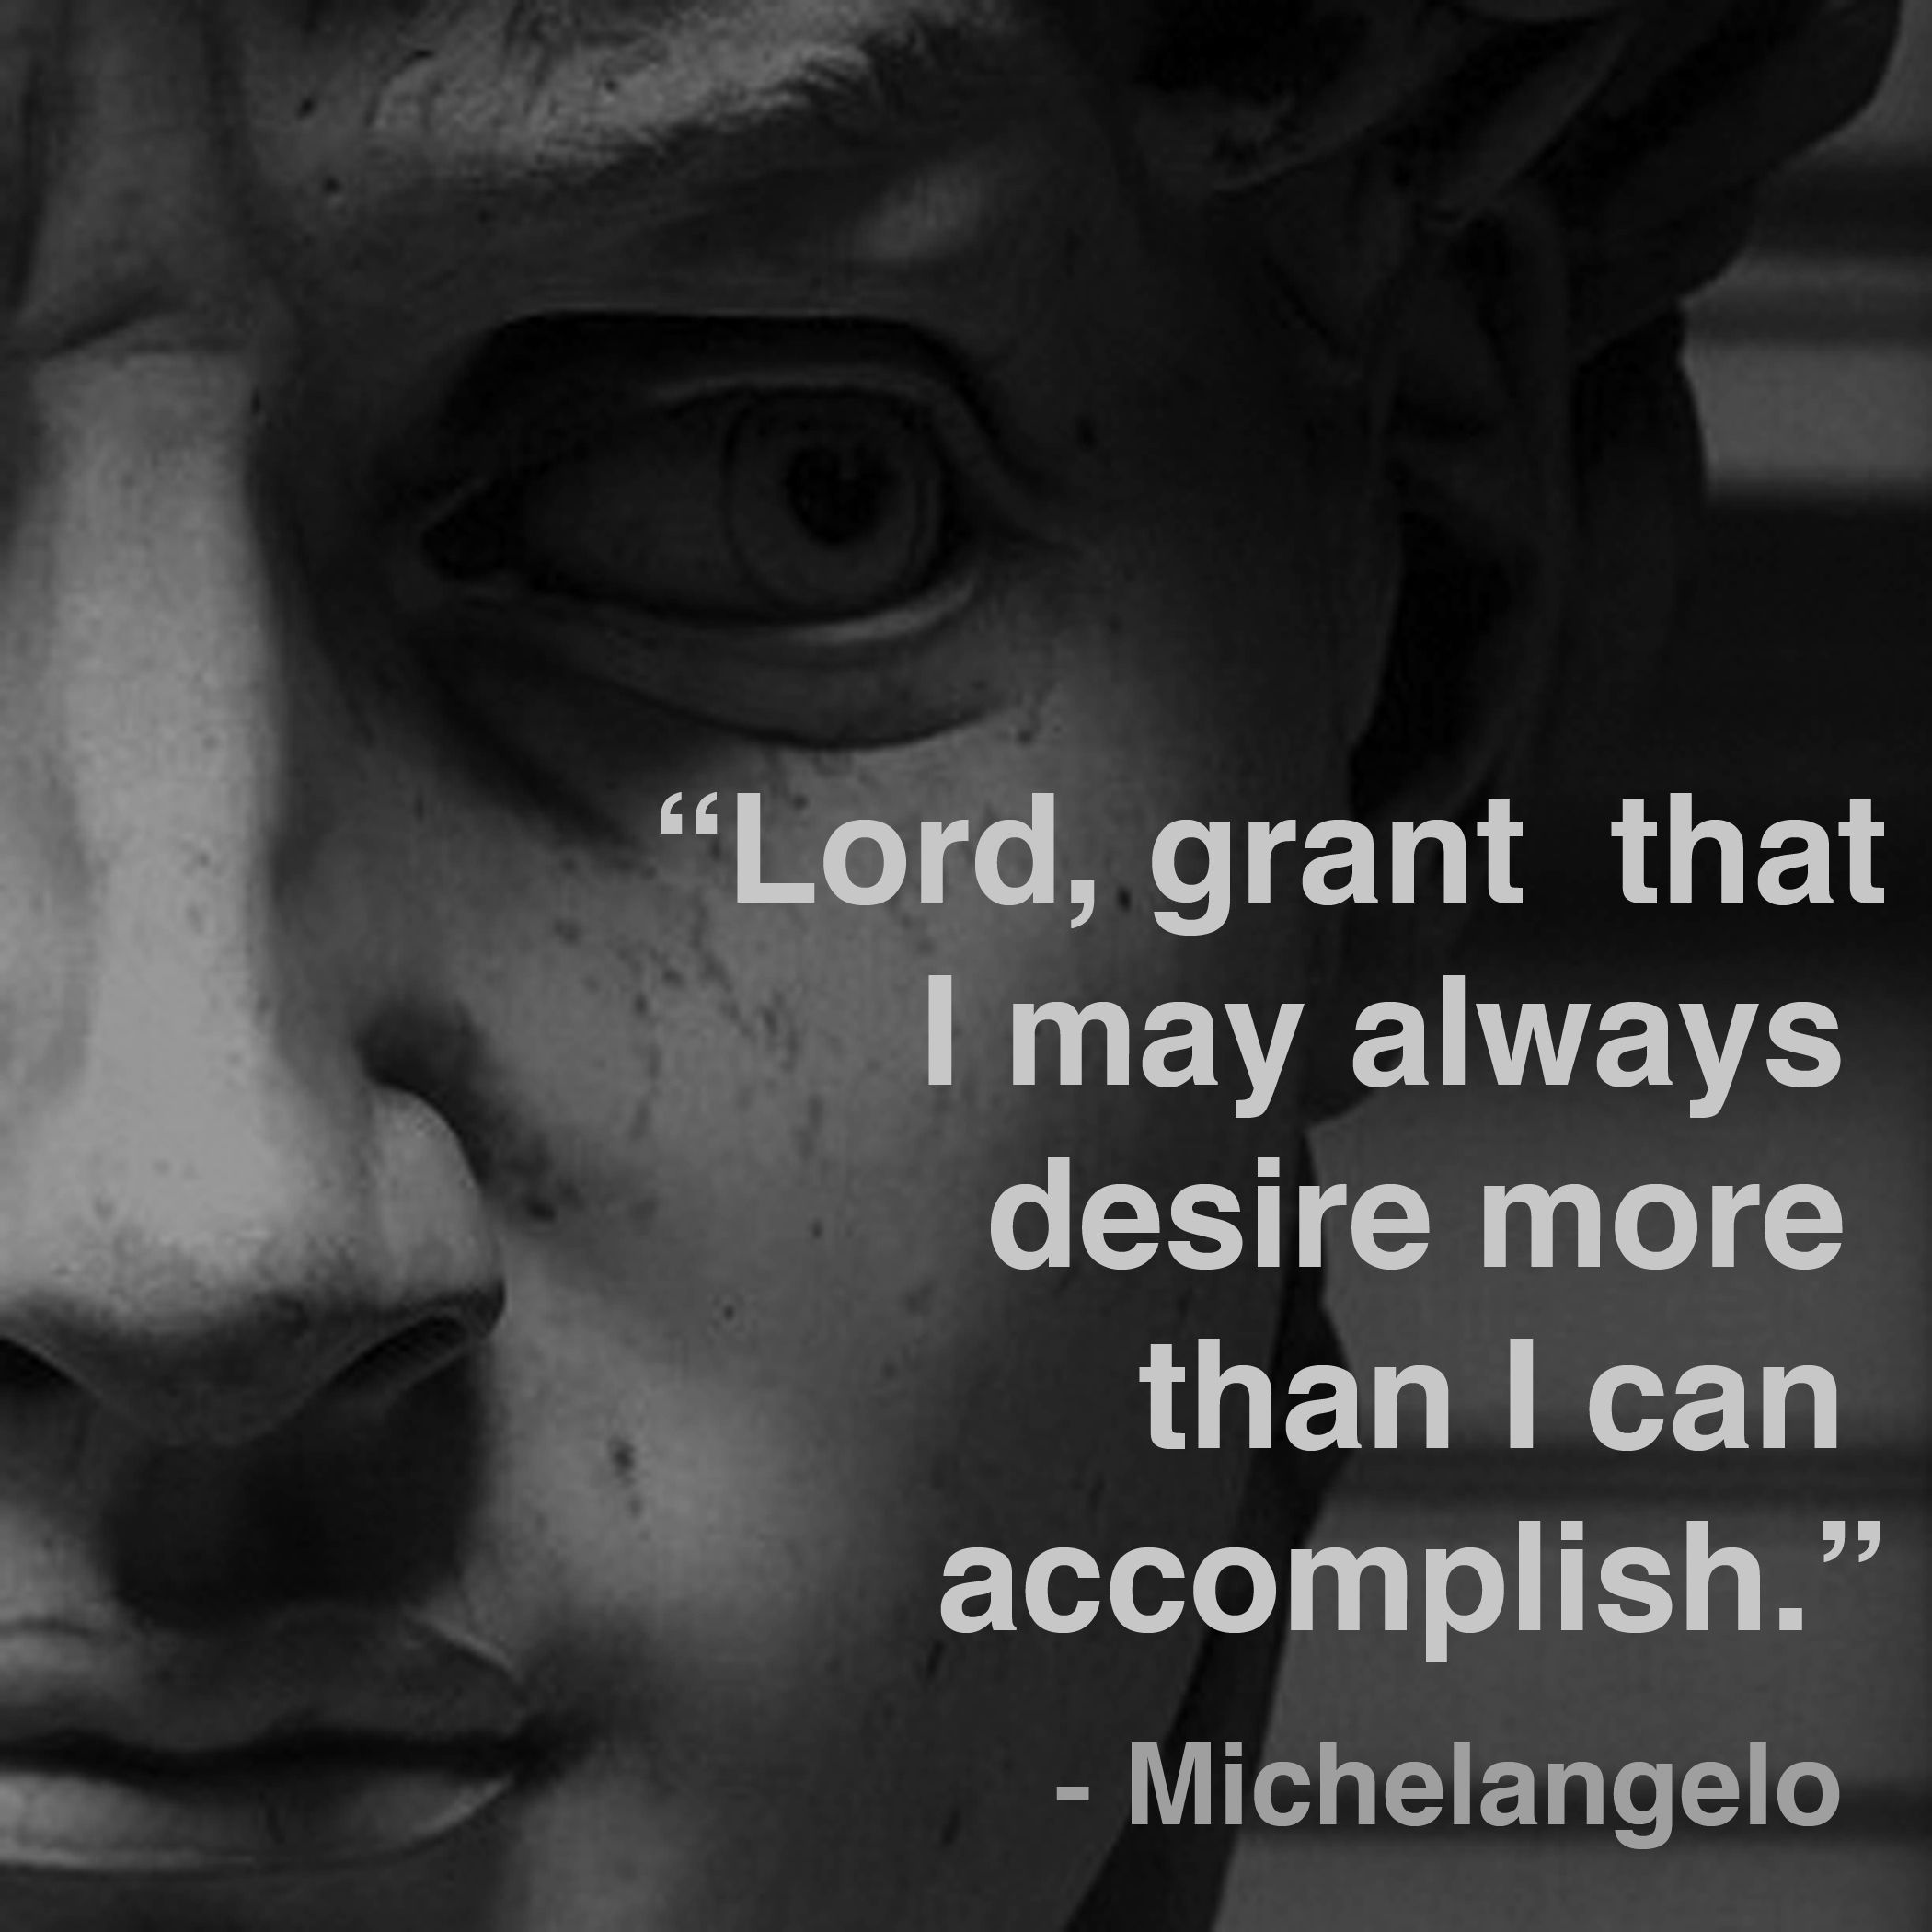 Michelangelo Quotes Alluring Lord Grant That I May Always Desire More Than I Can Accomplish